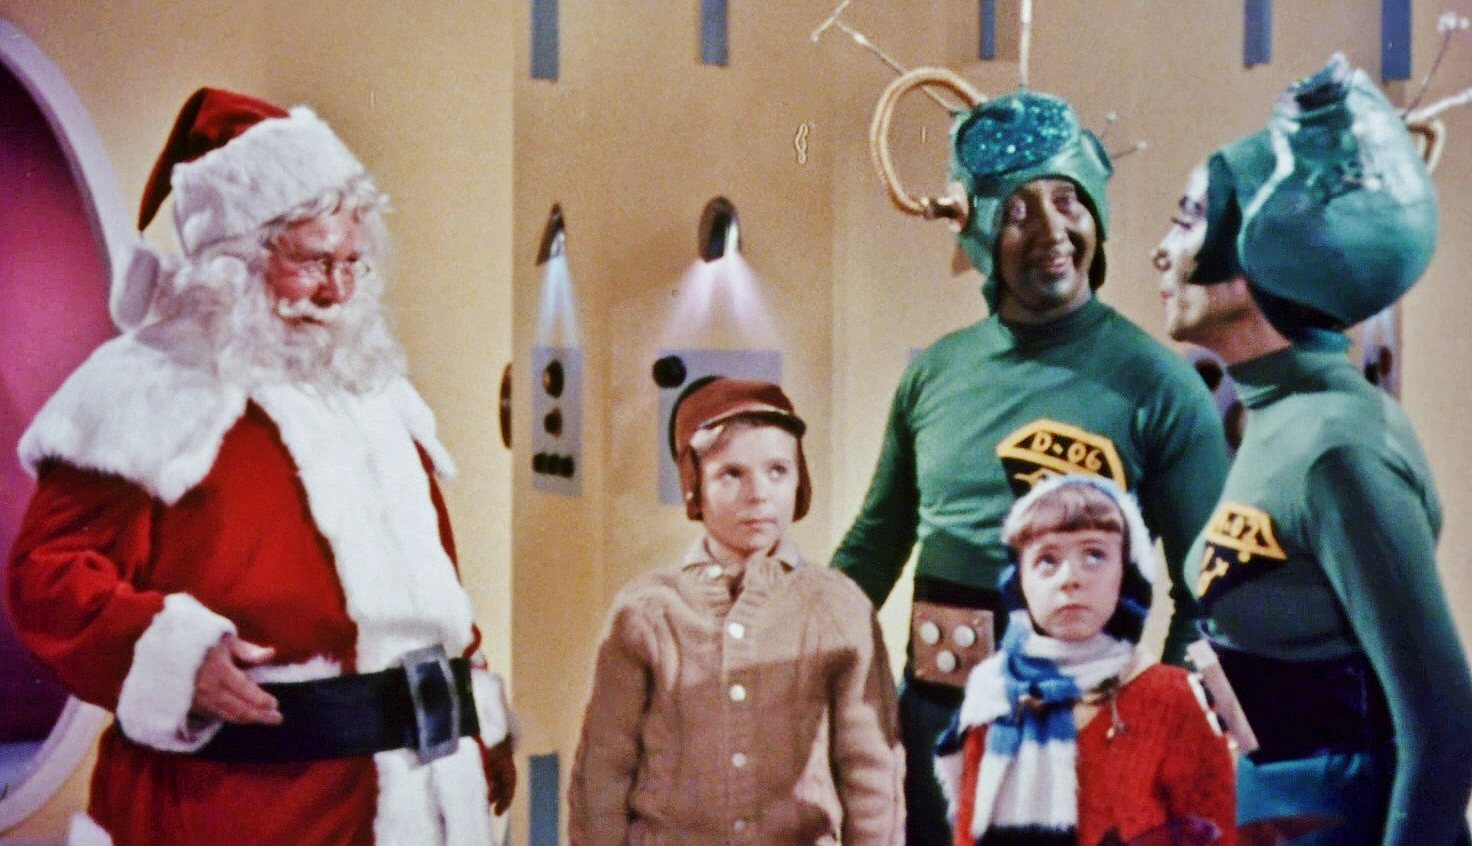 Santa talks to two people in martian outfits